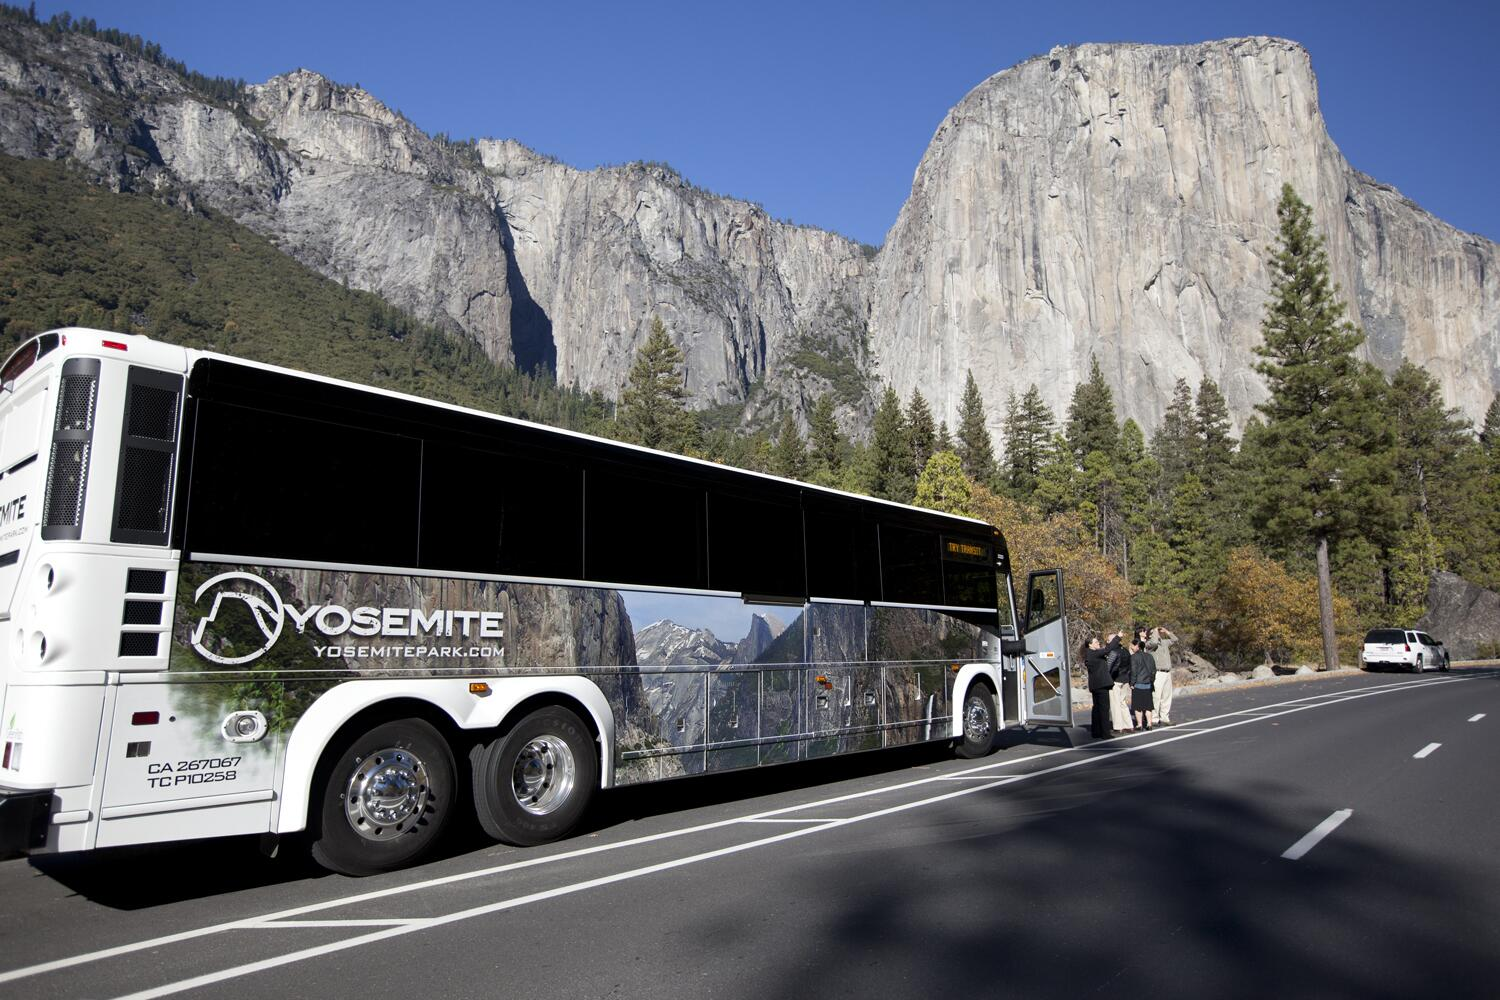 Starting this weekend, the #Yosemite Valley free shuttle bus route expands to include the El Capitan loop. http://t.co/08lyp4Znnm